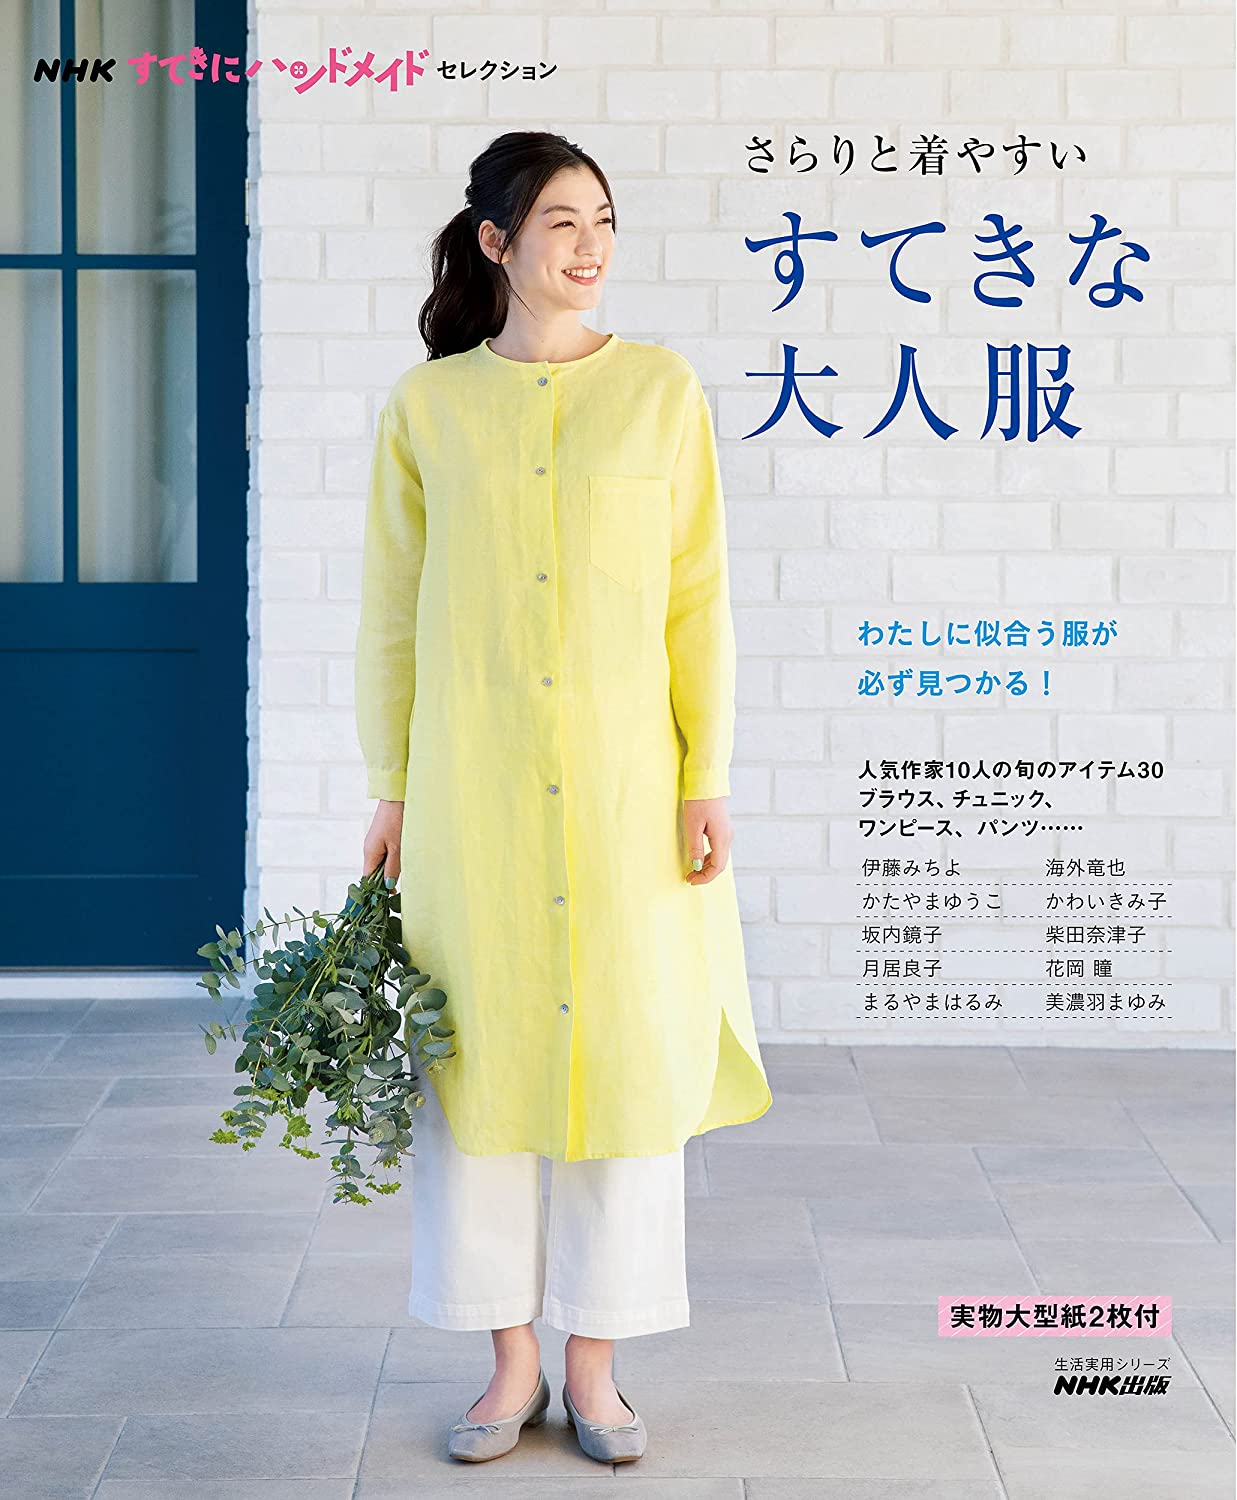 NHK Nice Handmade Selection. Nice adult clothes that are easy to wear 70